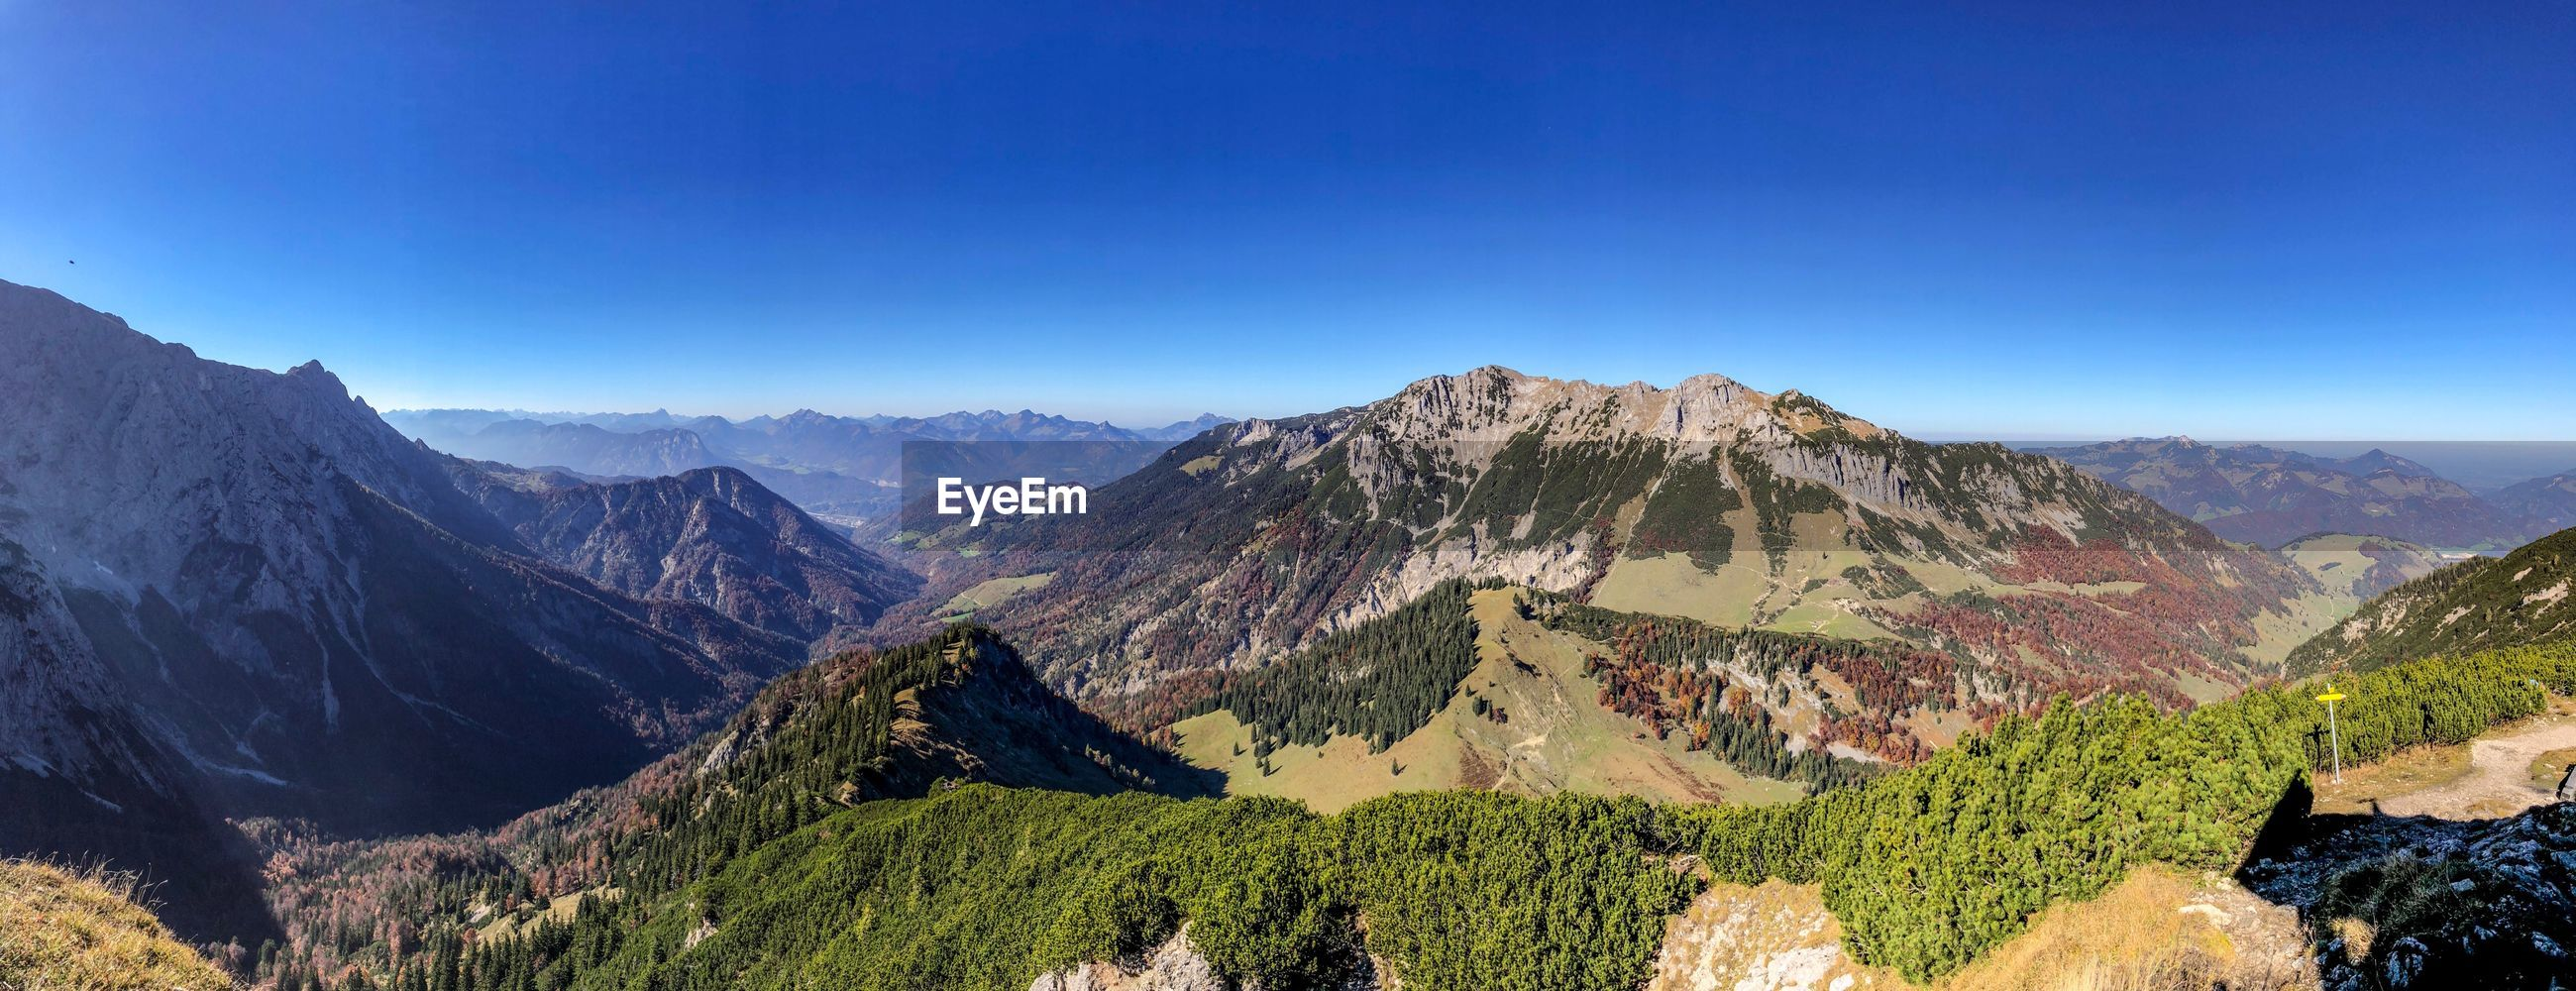 PANORAMIC VIEW OF MOUNTAIN RANGE AGAINST BLUE SKY